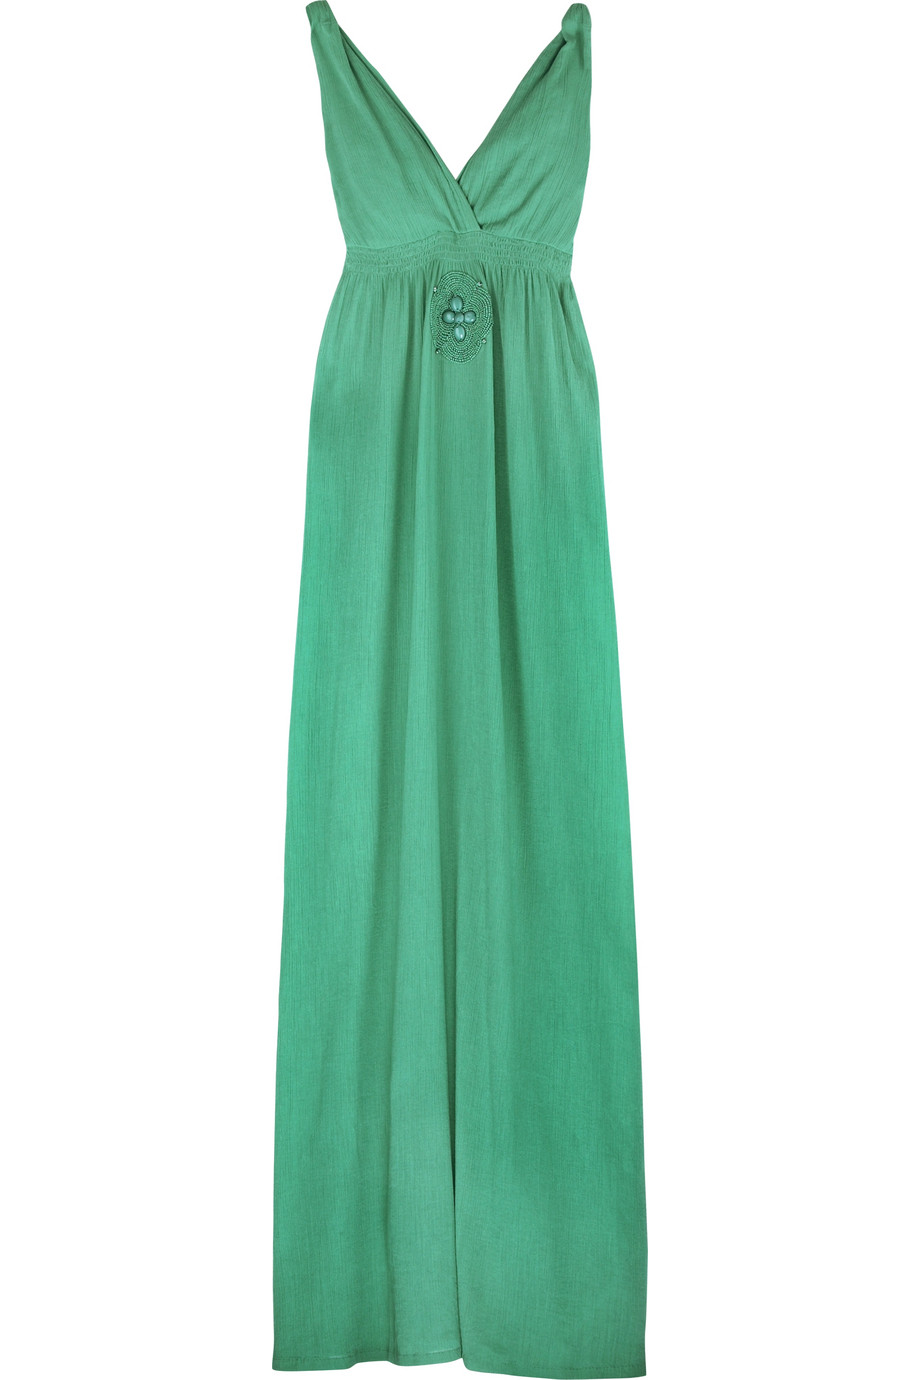 Discount Melissa Odabash Sanela Cotton Maxi Dress The Outnet